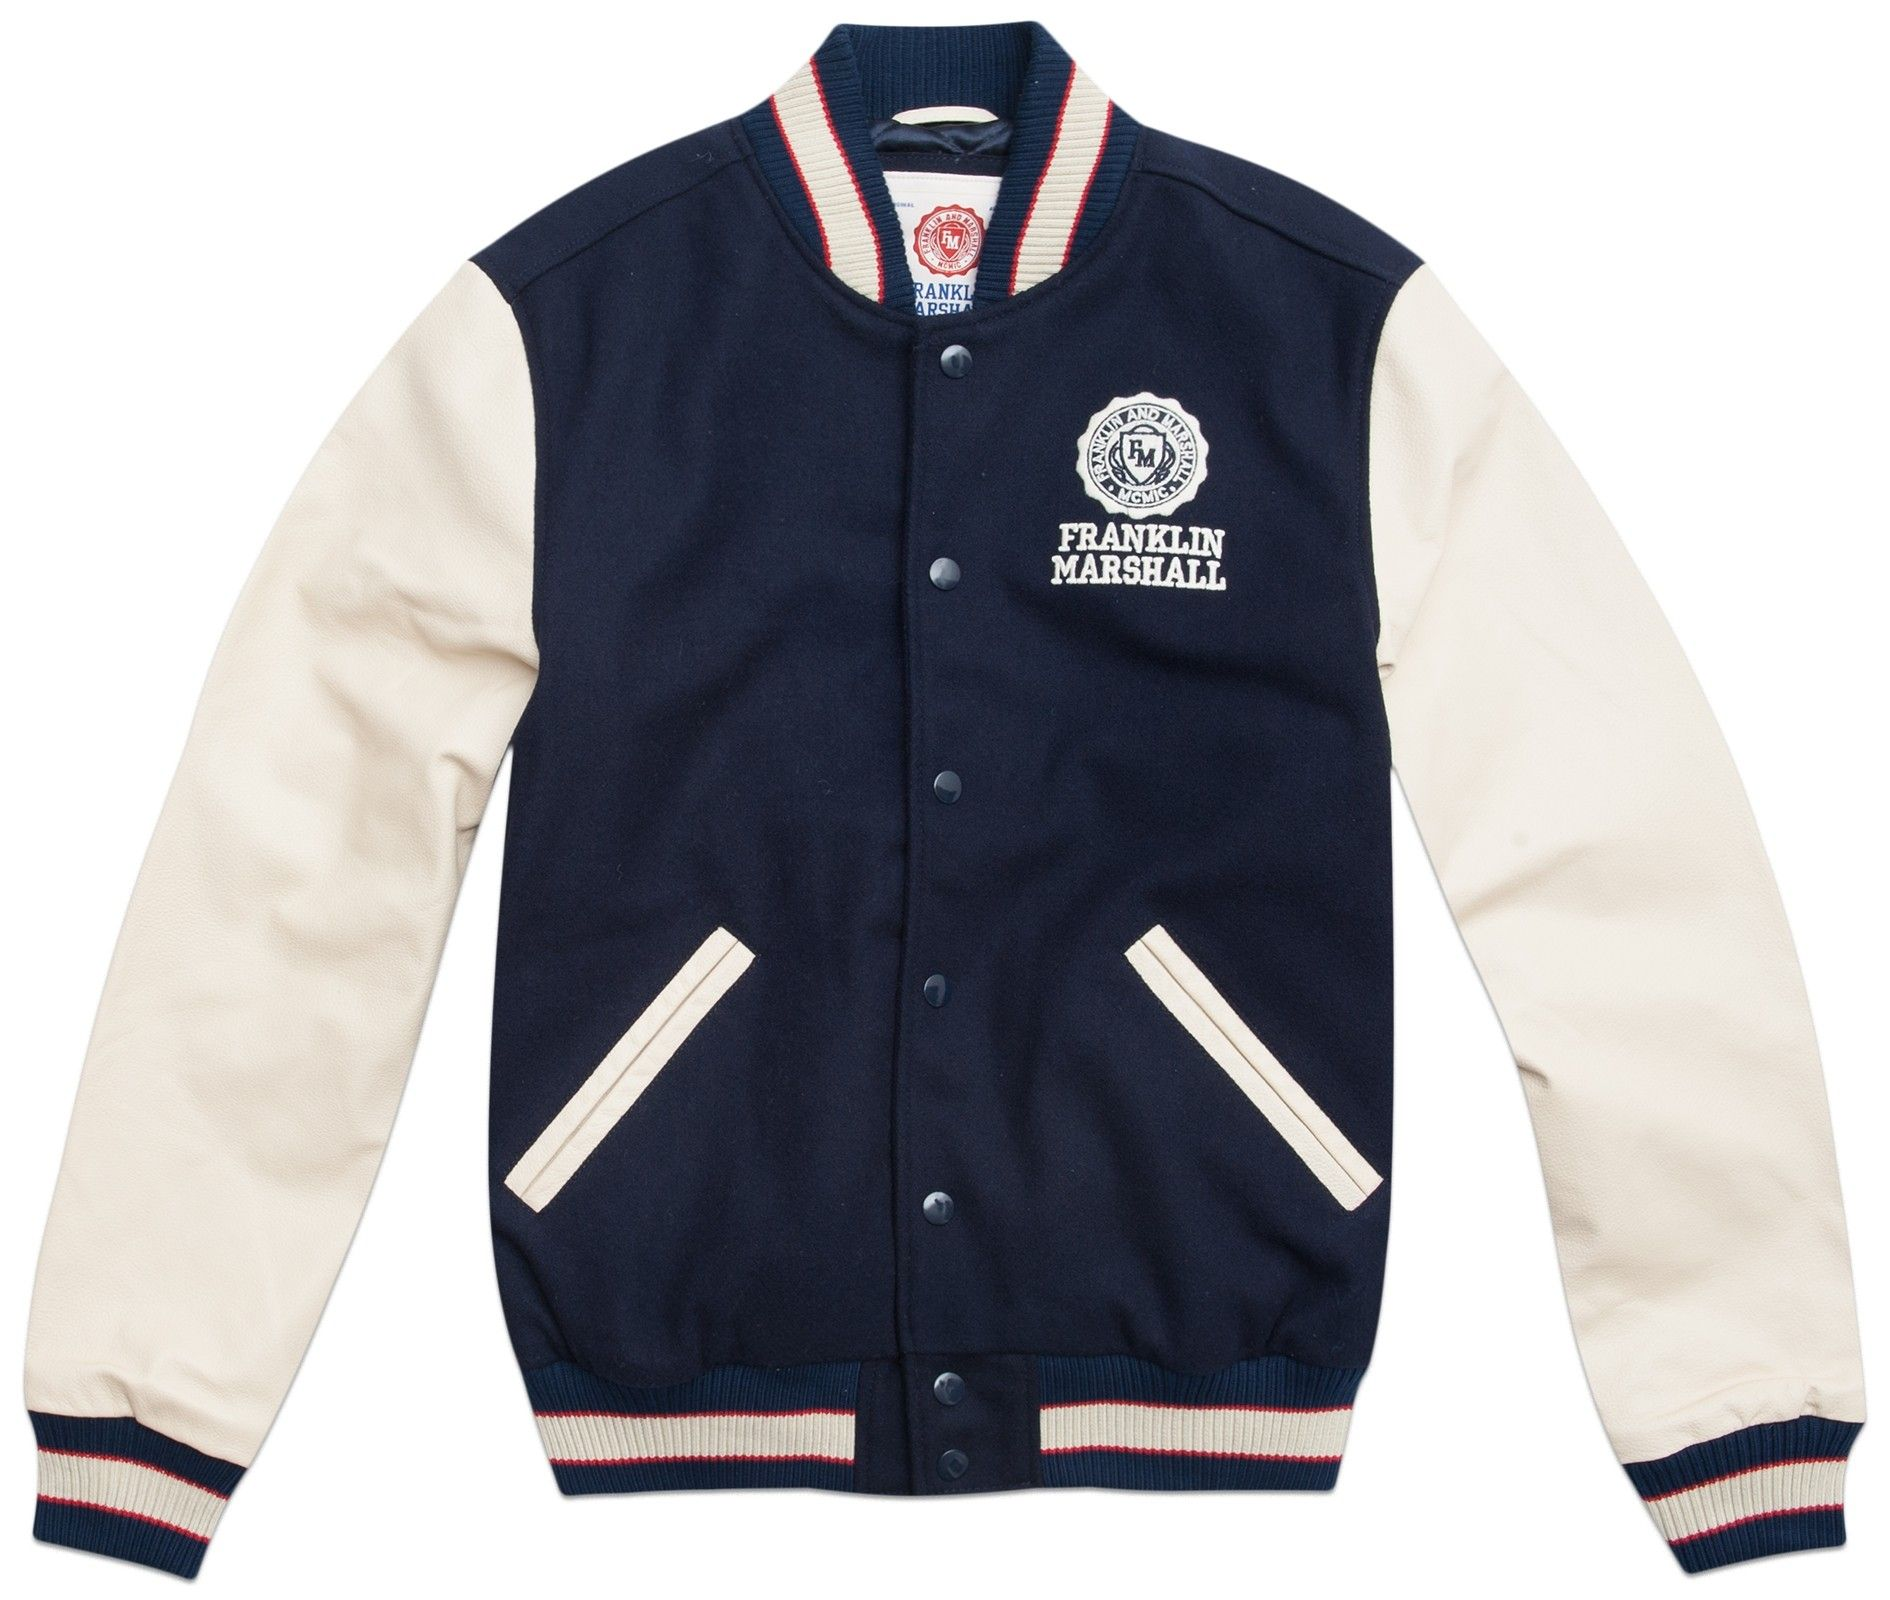 a9656a557810 Letterman jacket in wool and leather - Jackets - MAN - Franklin   Marshall  - Franklin   Marshall